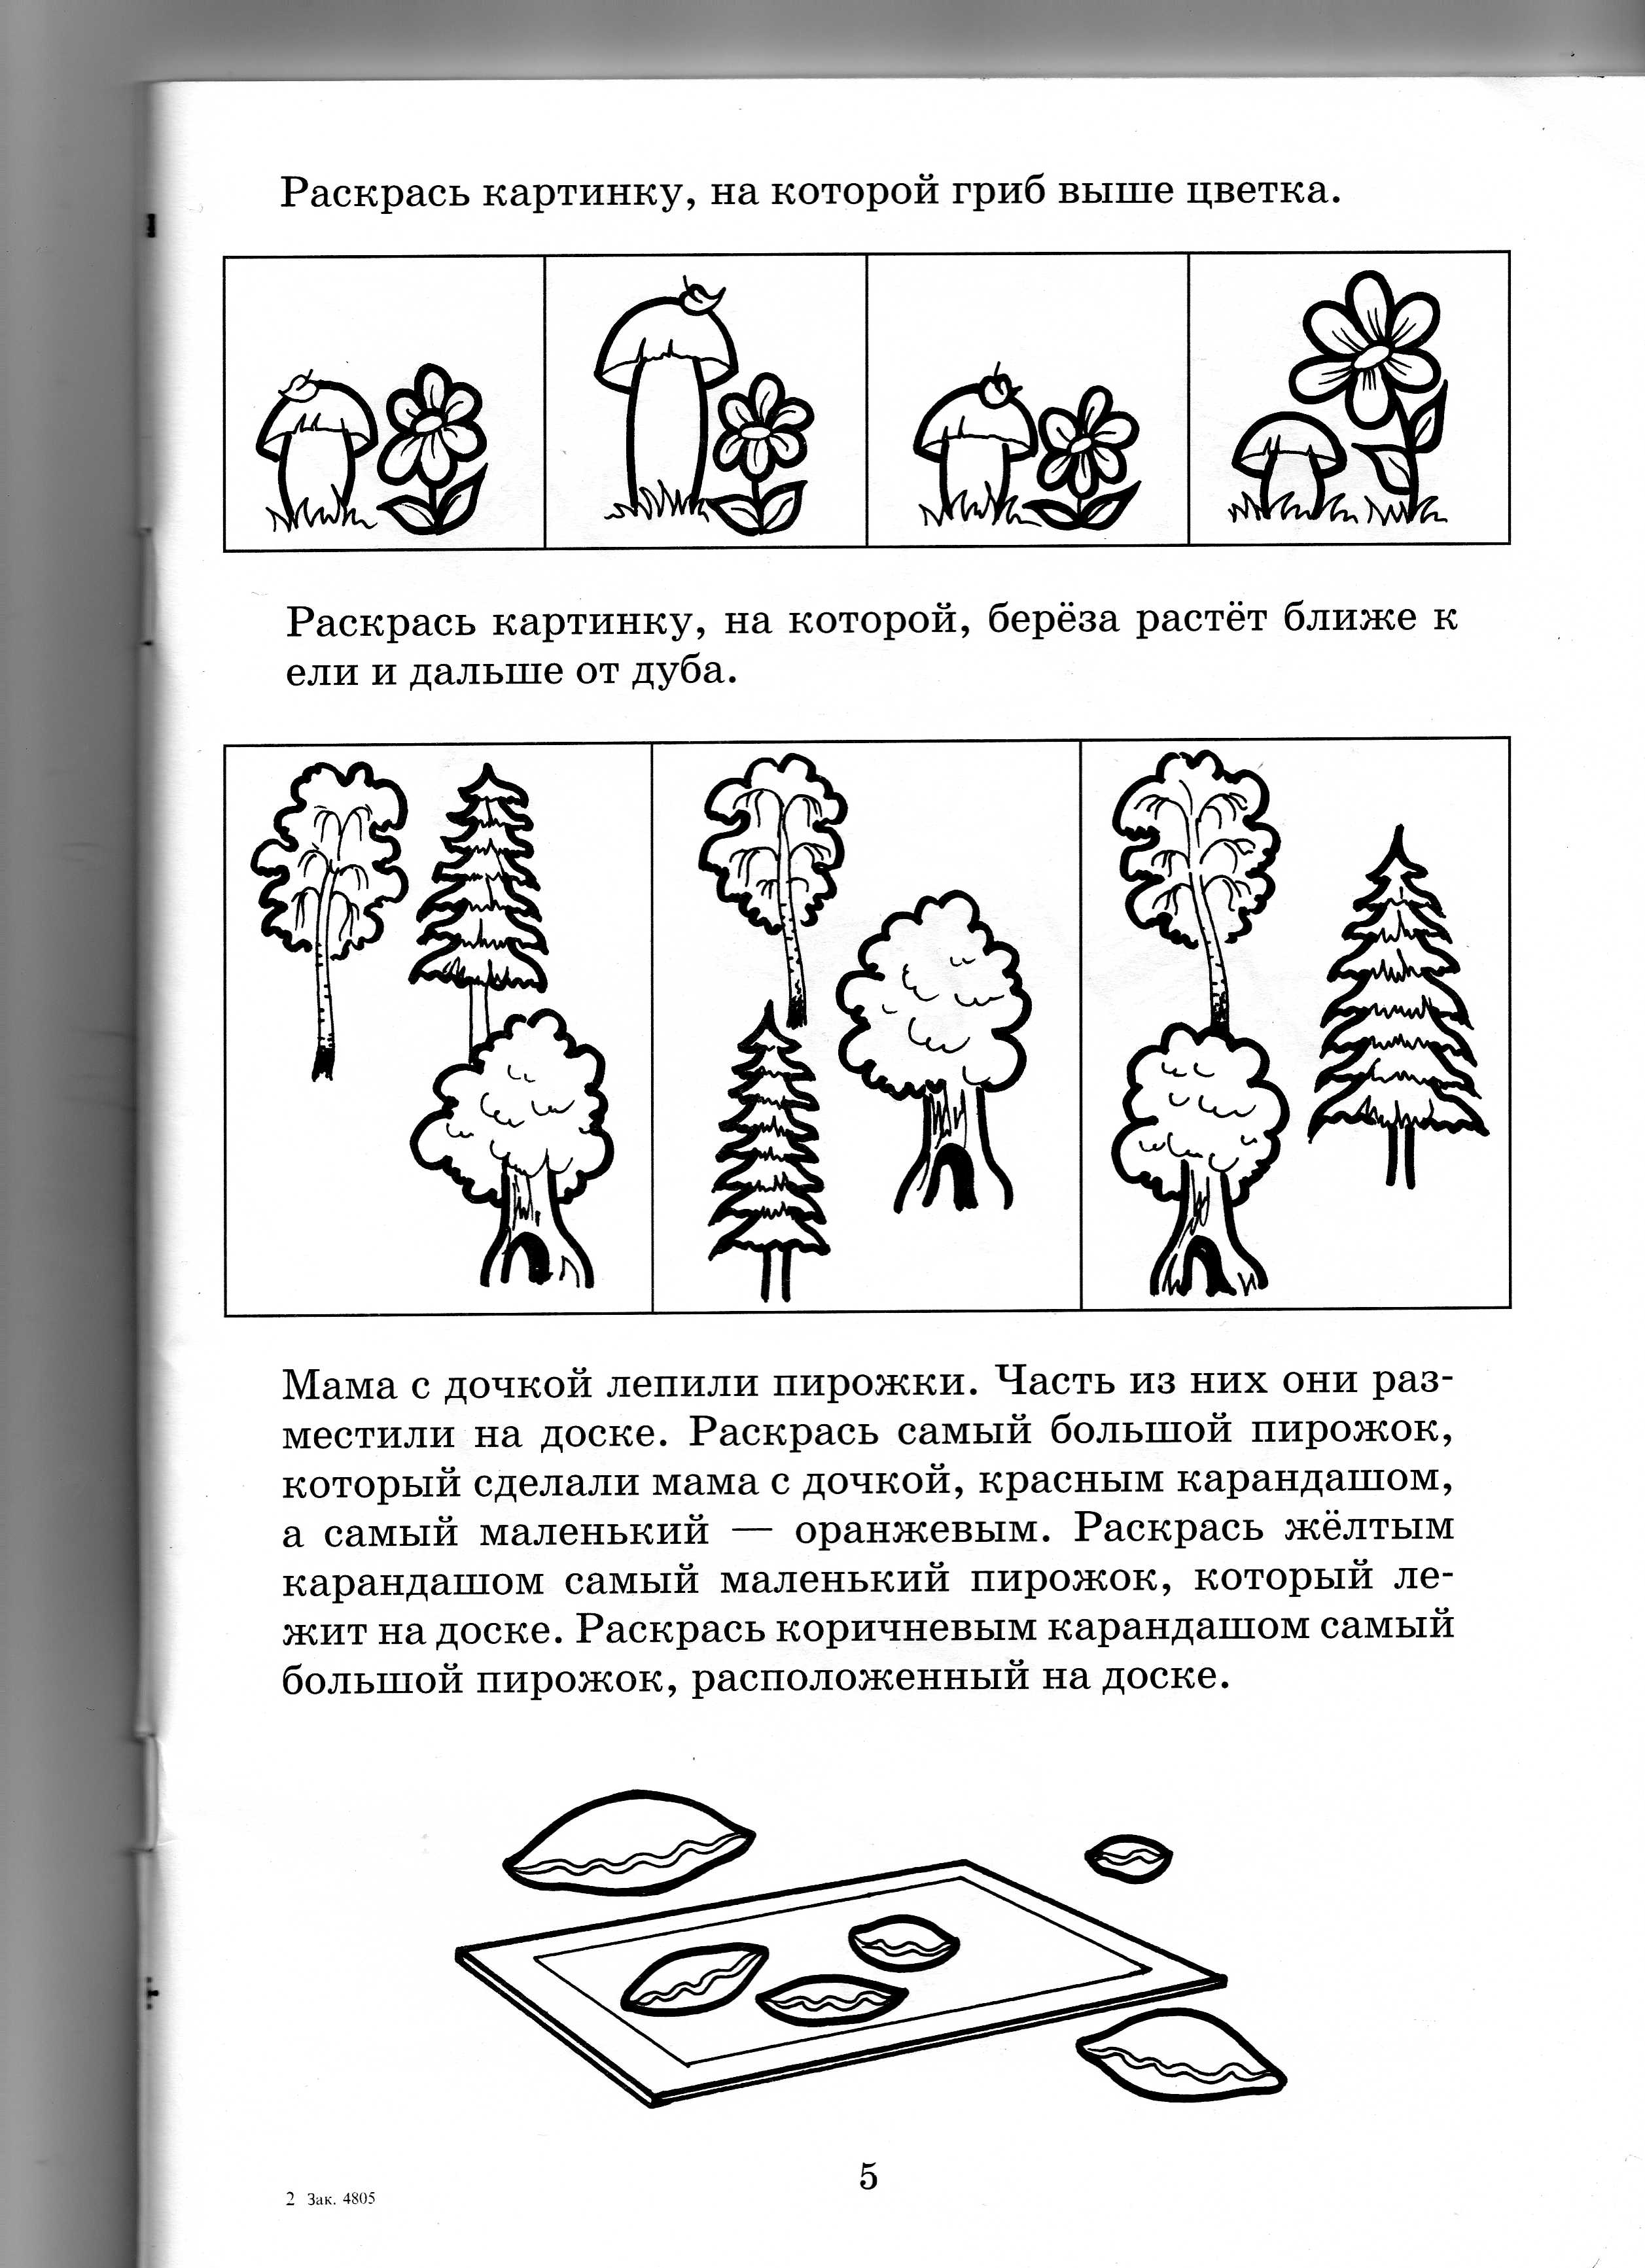 C:\Users\еле\Pictures\img289.jpg